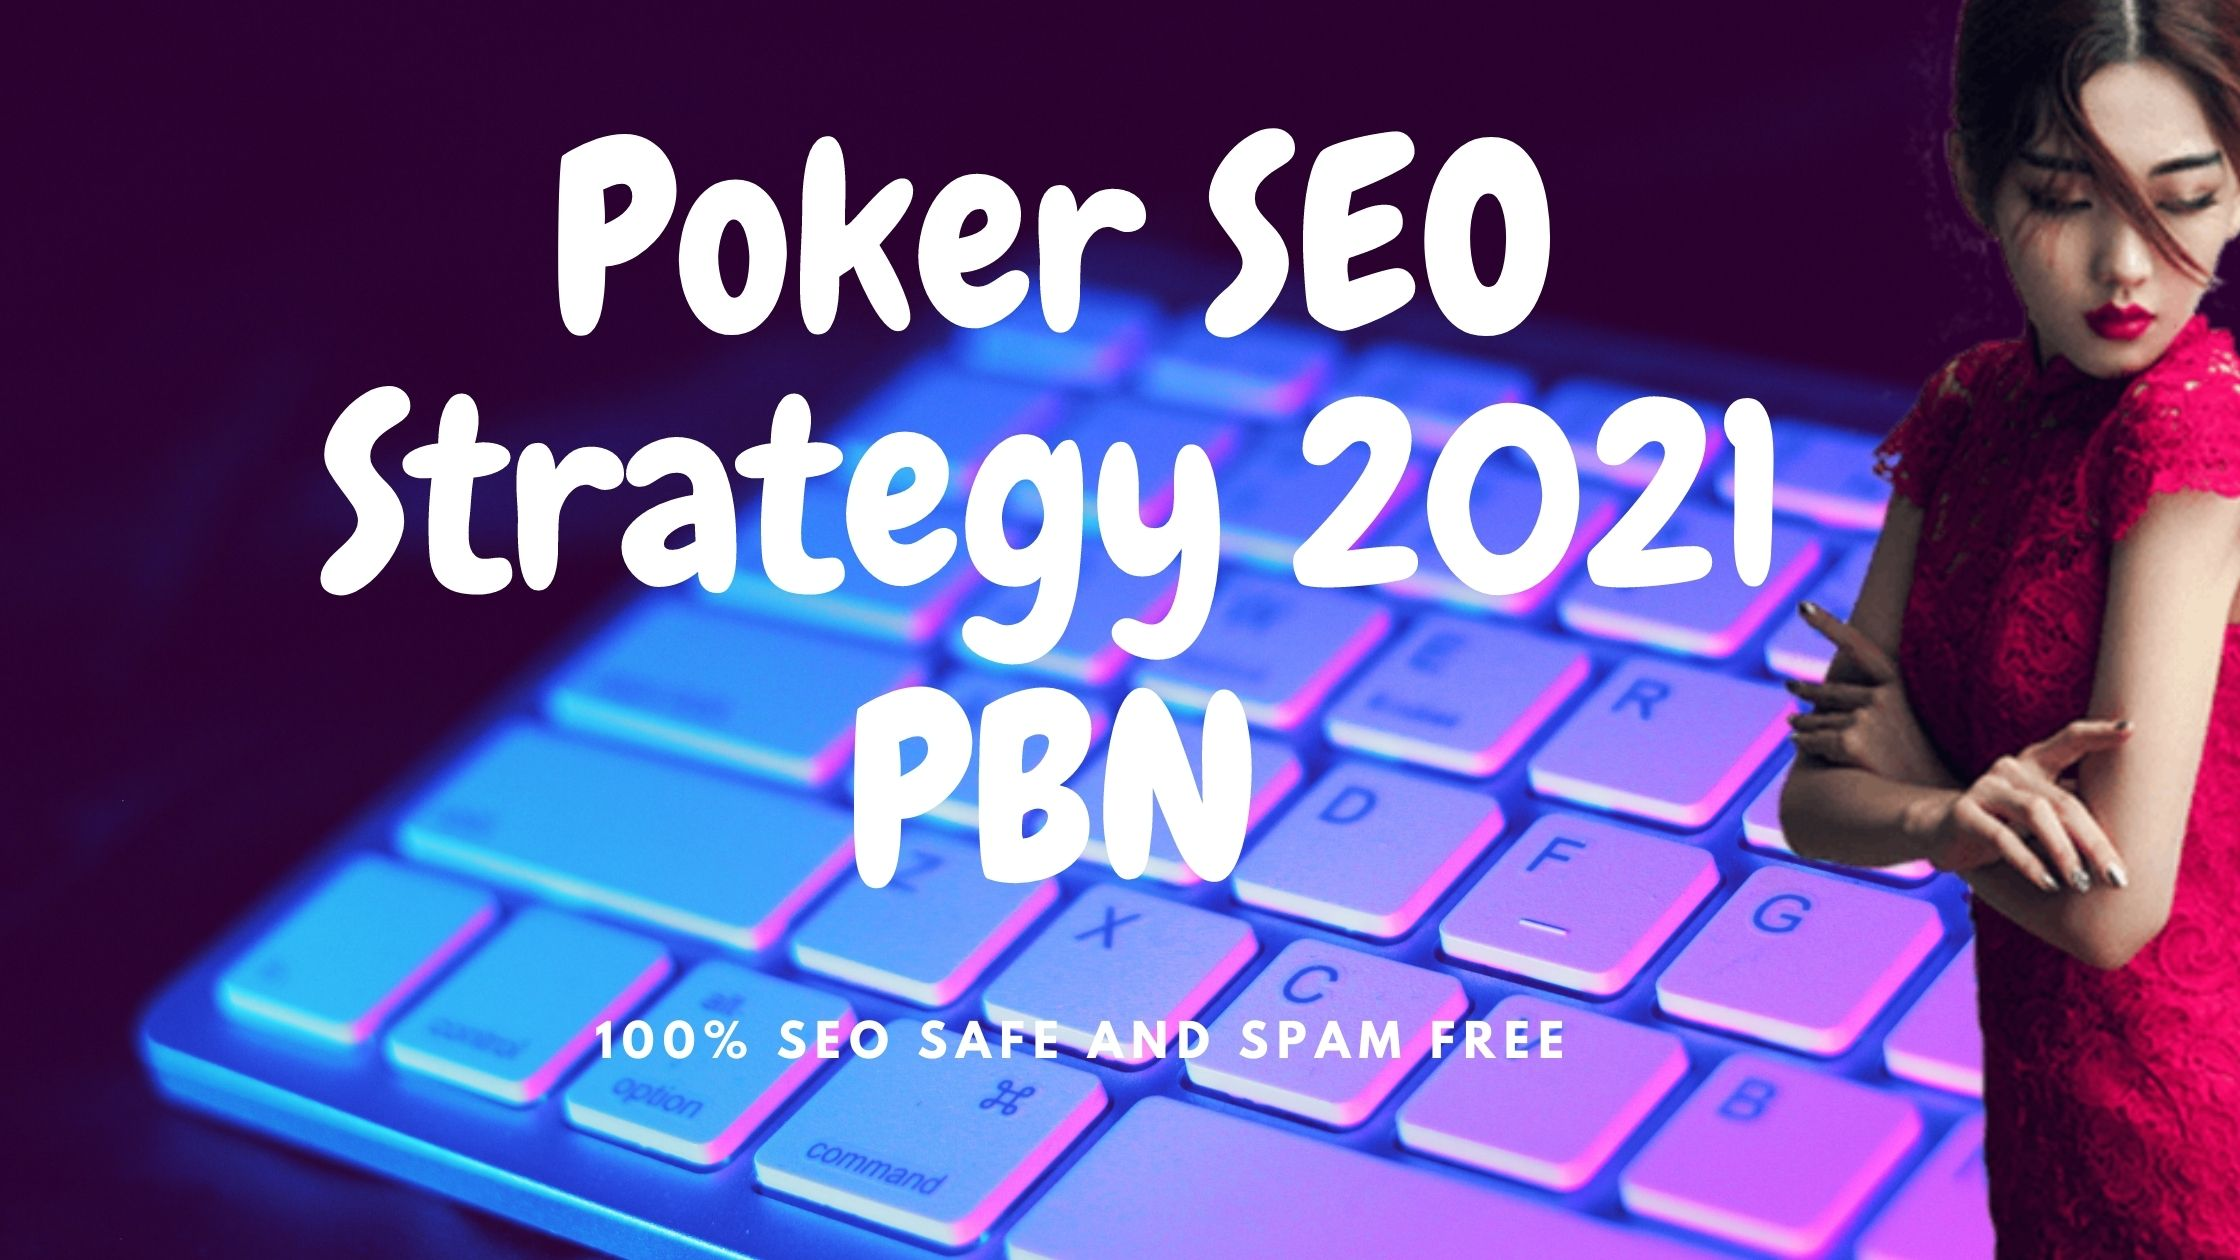 Casino PBN Pyramids Poker SEO Strategy 2021 Verified Backlinks for 1st Ranking on Google V1